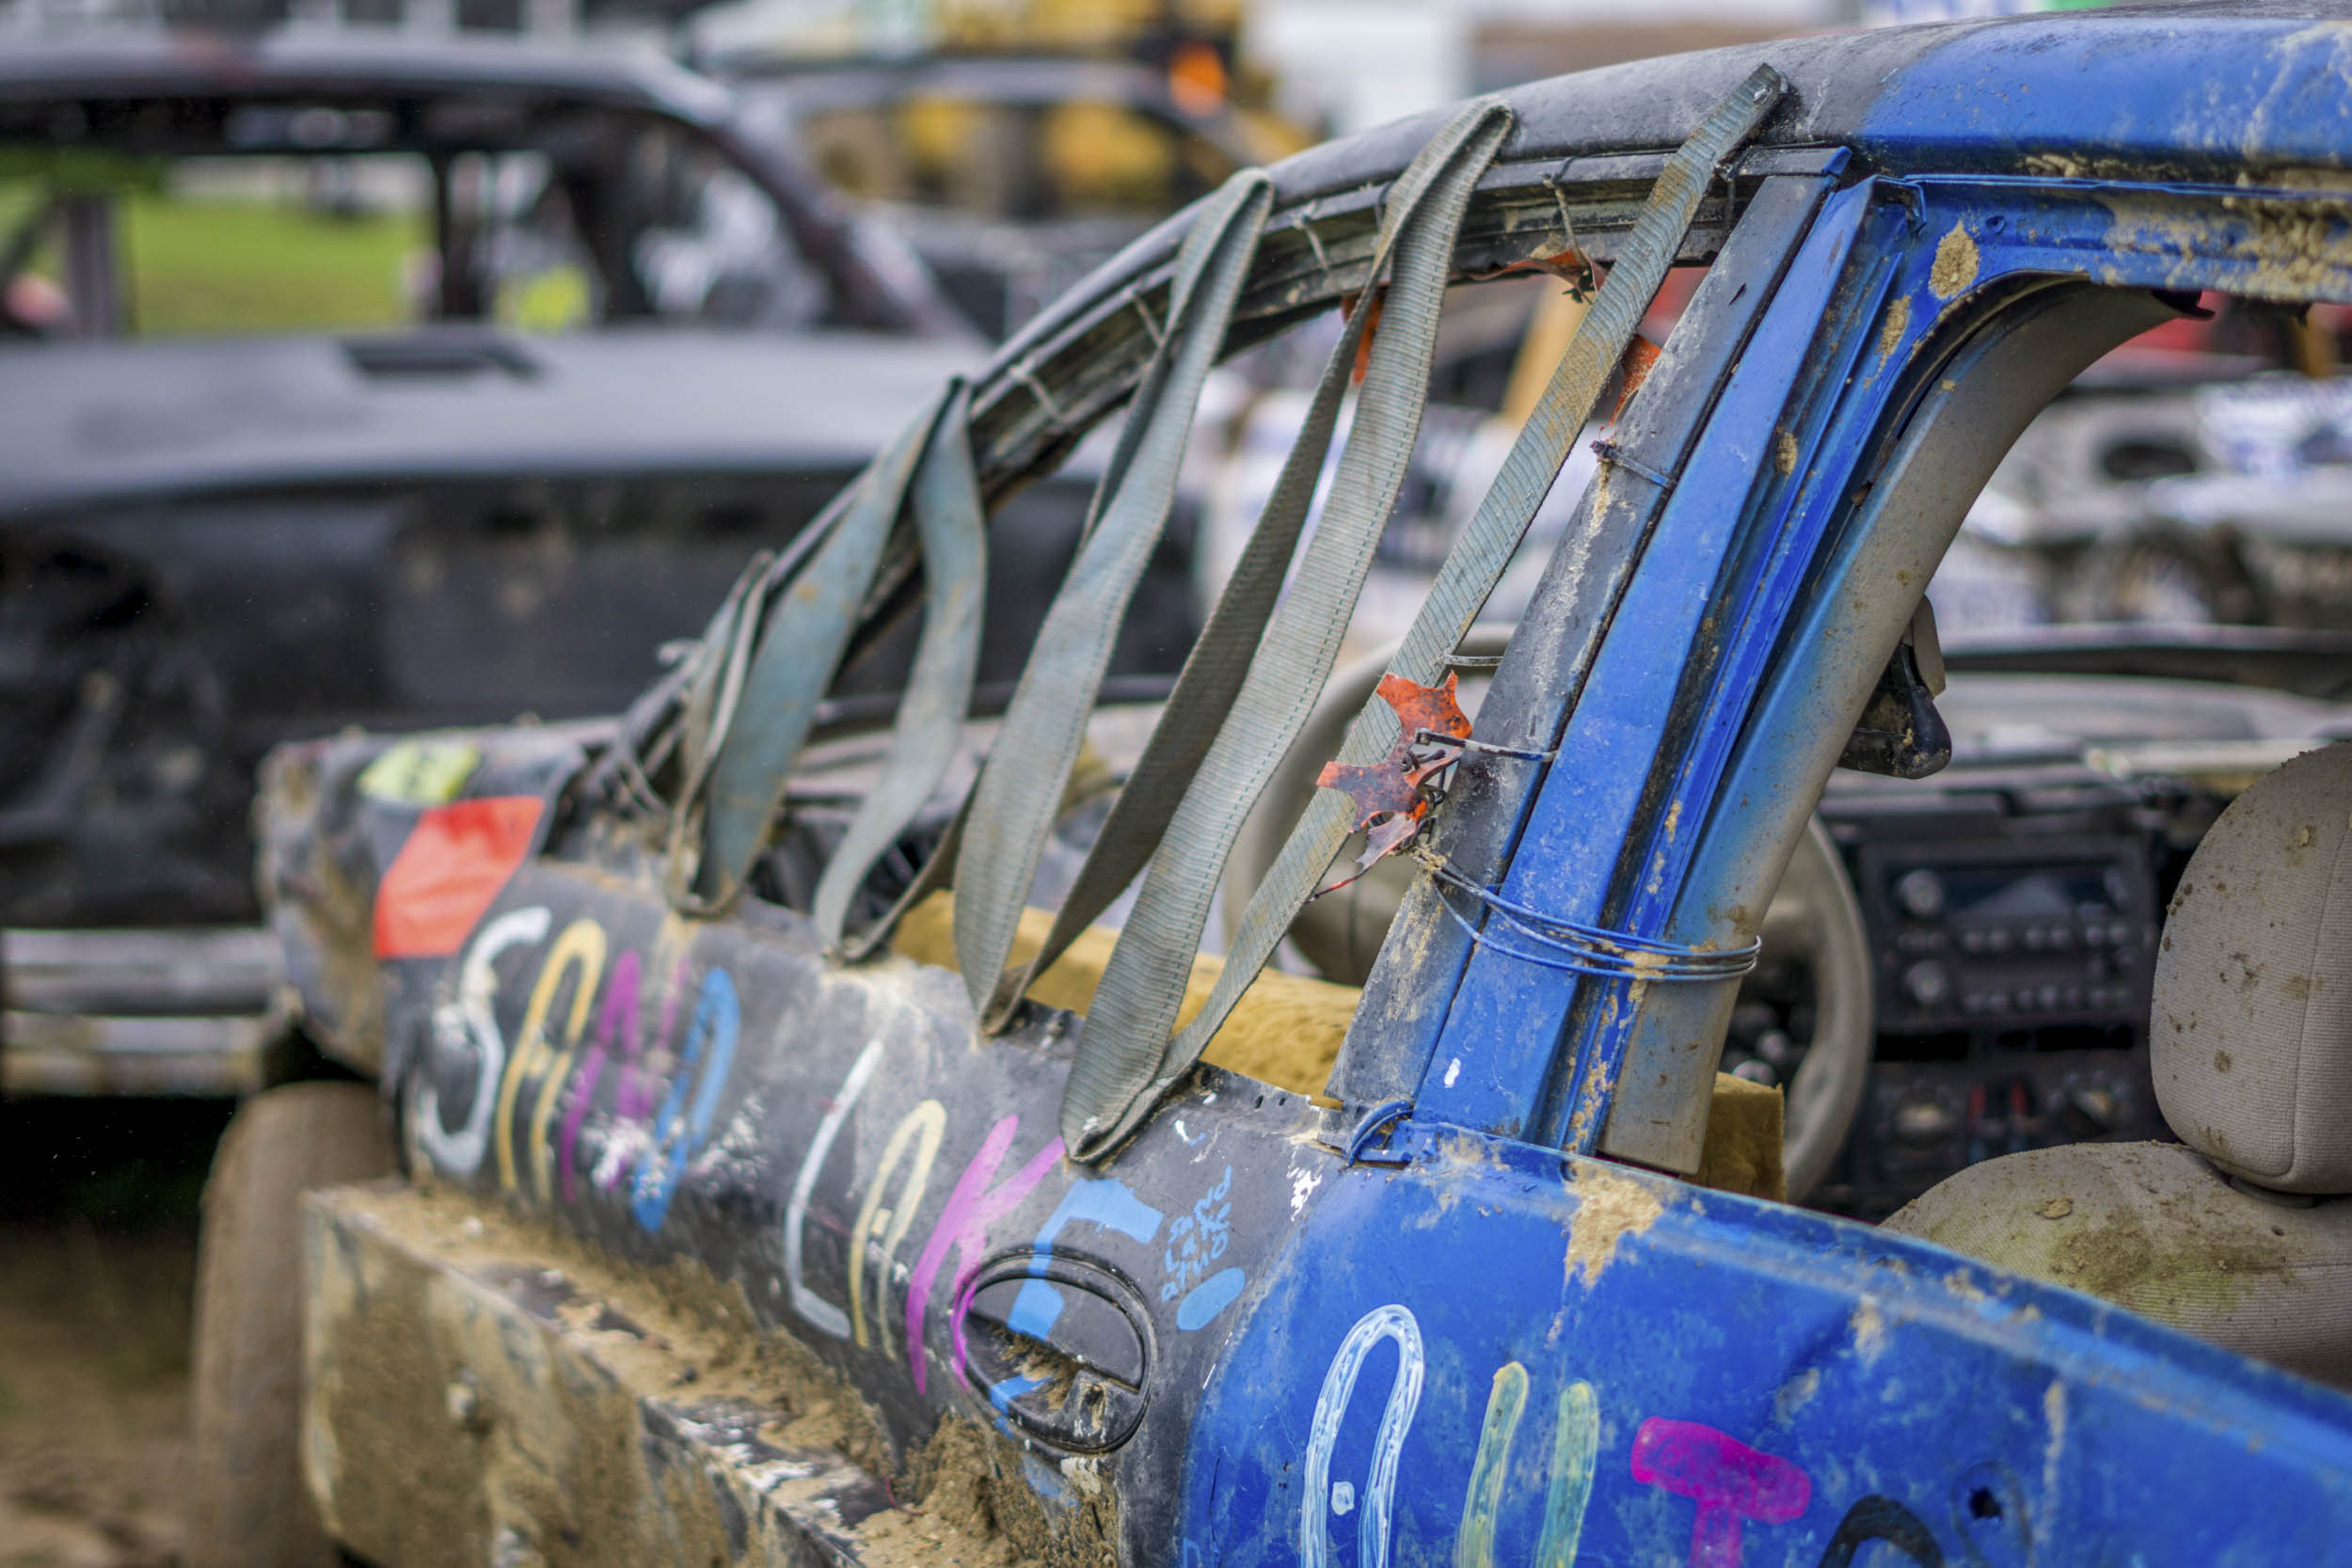 demolition derby duct tape window